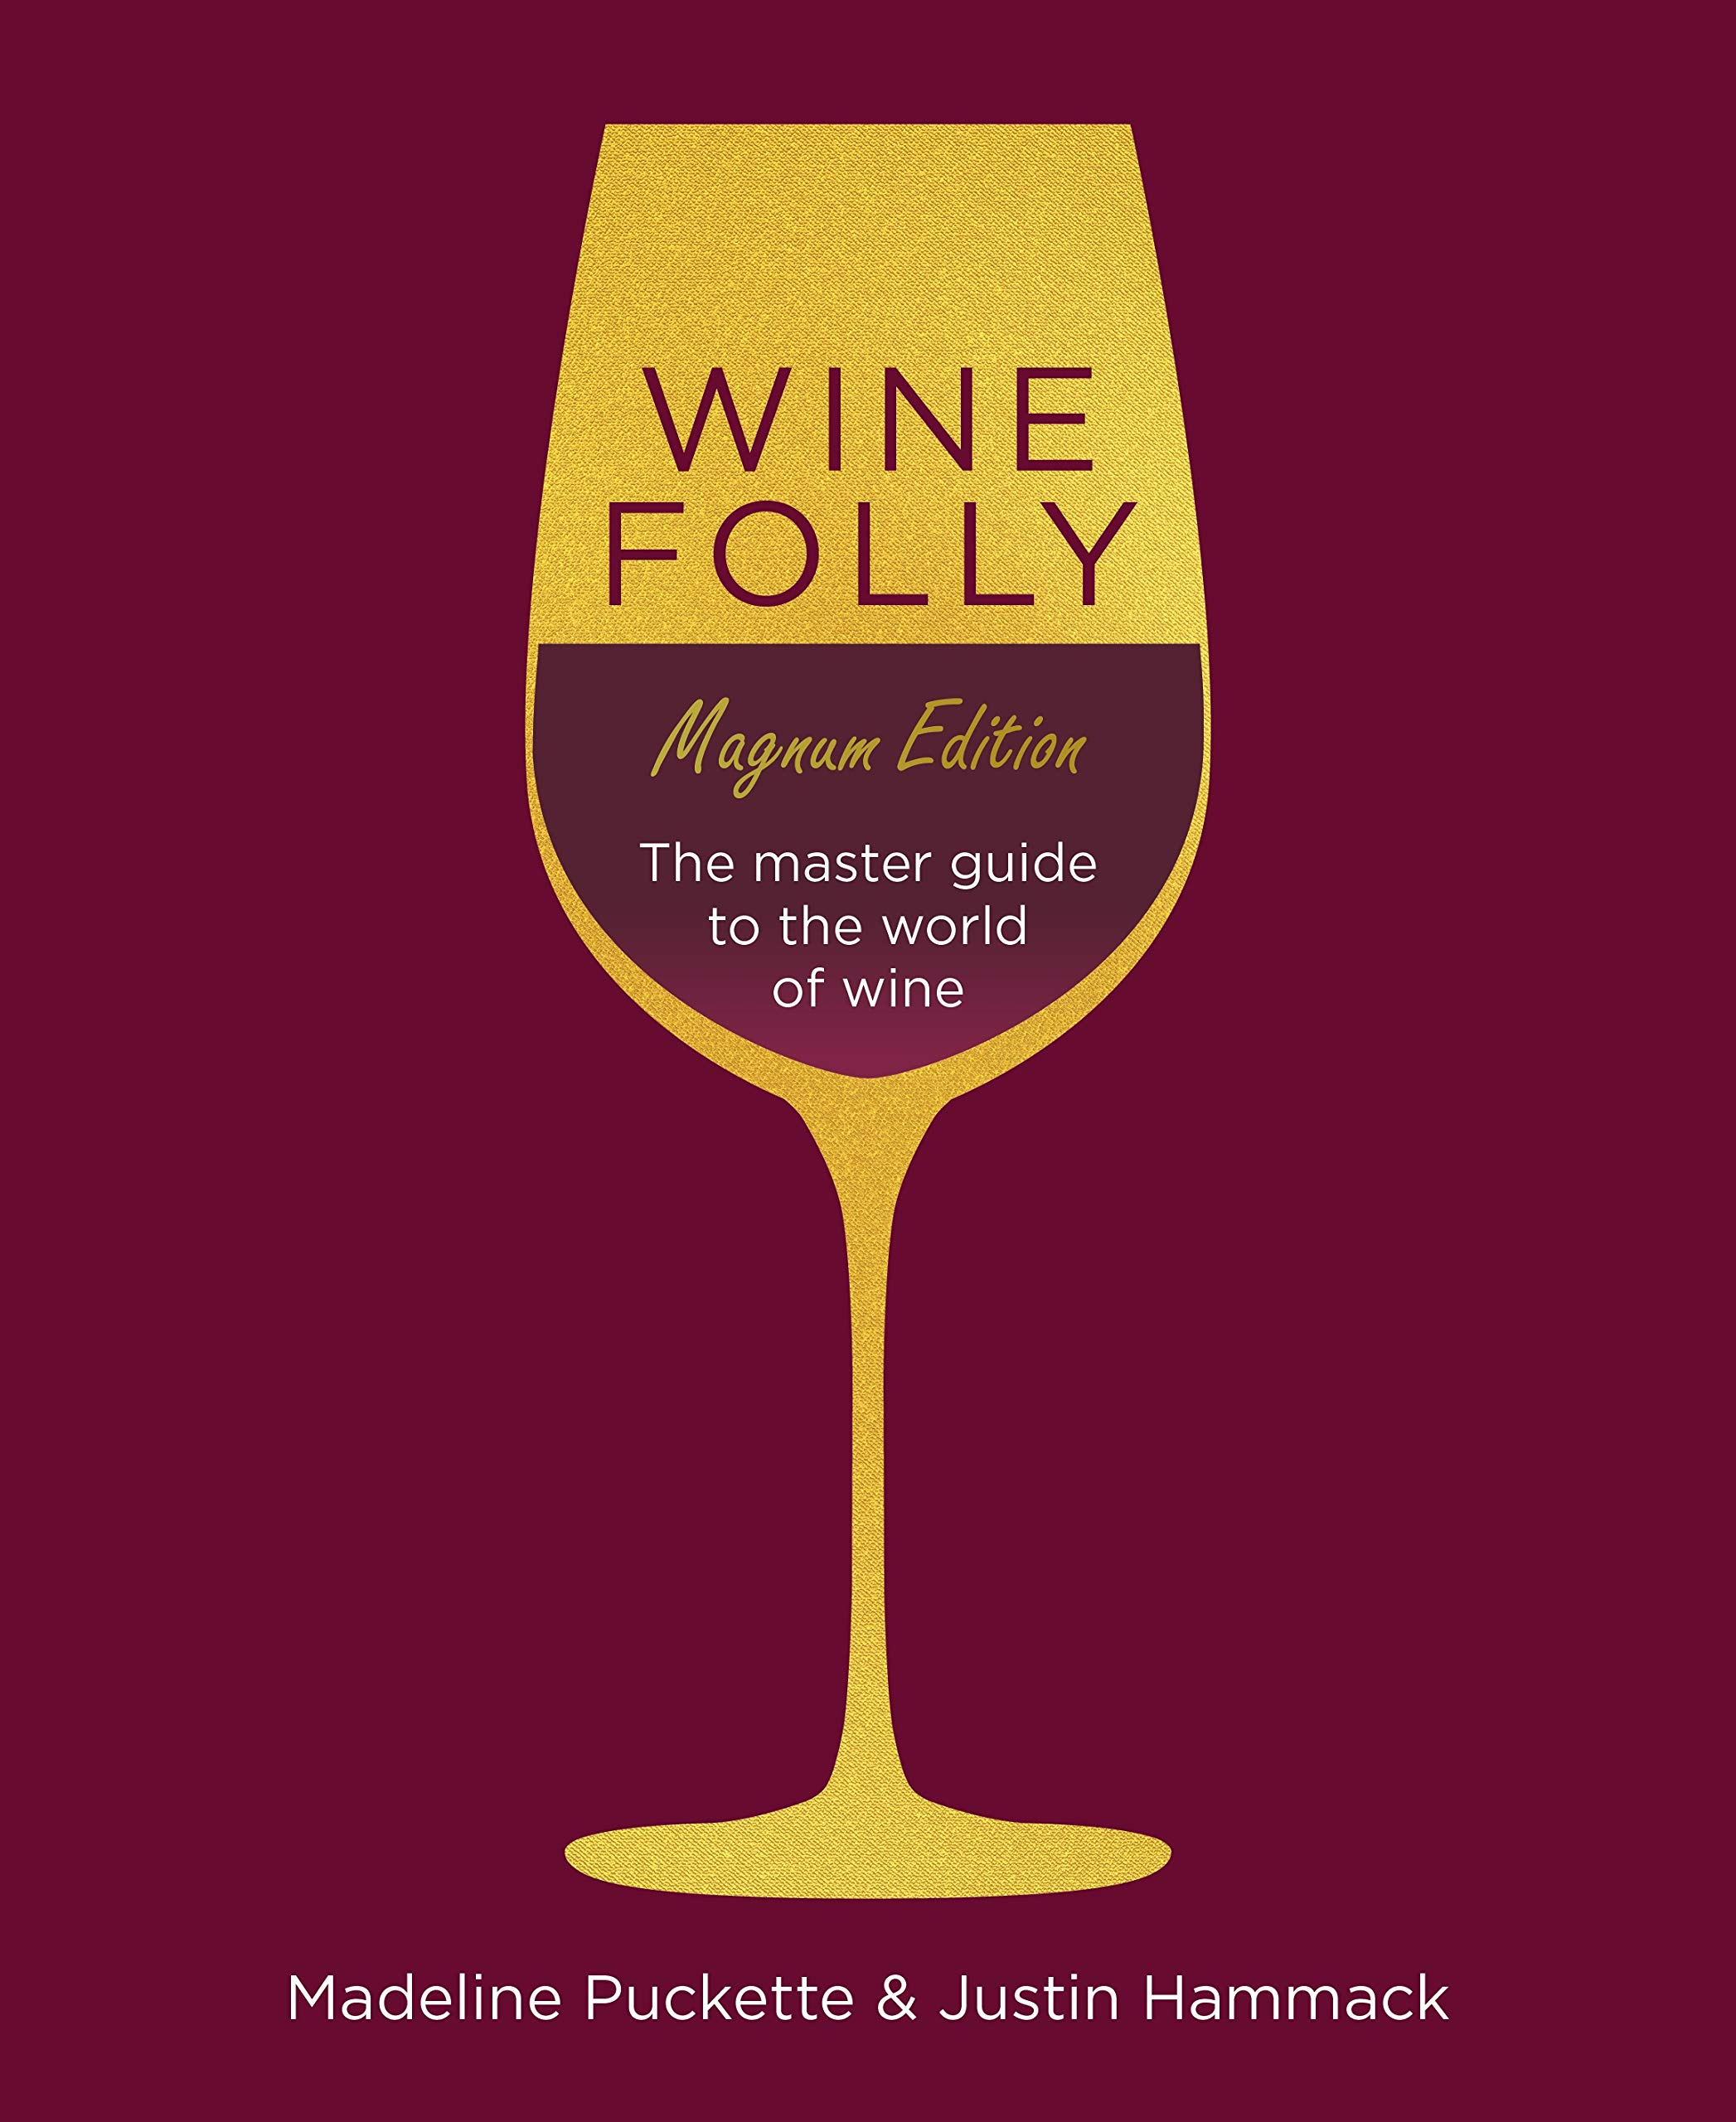 72889be20163 Wine Folly  Magnum Edition  The Master Guide  The Magnum Edition ...